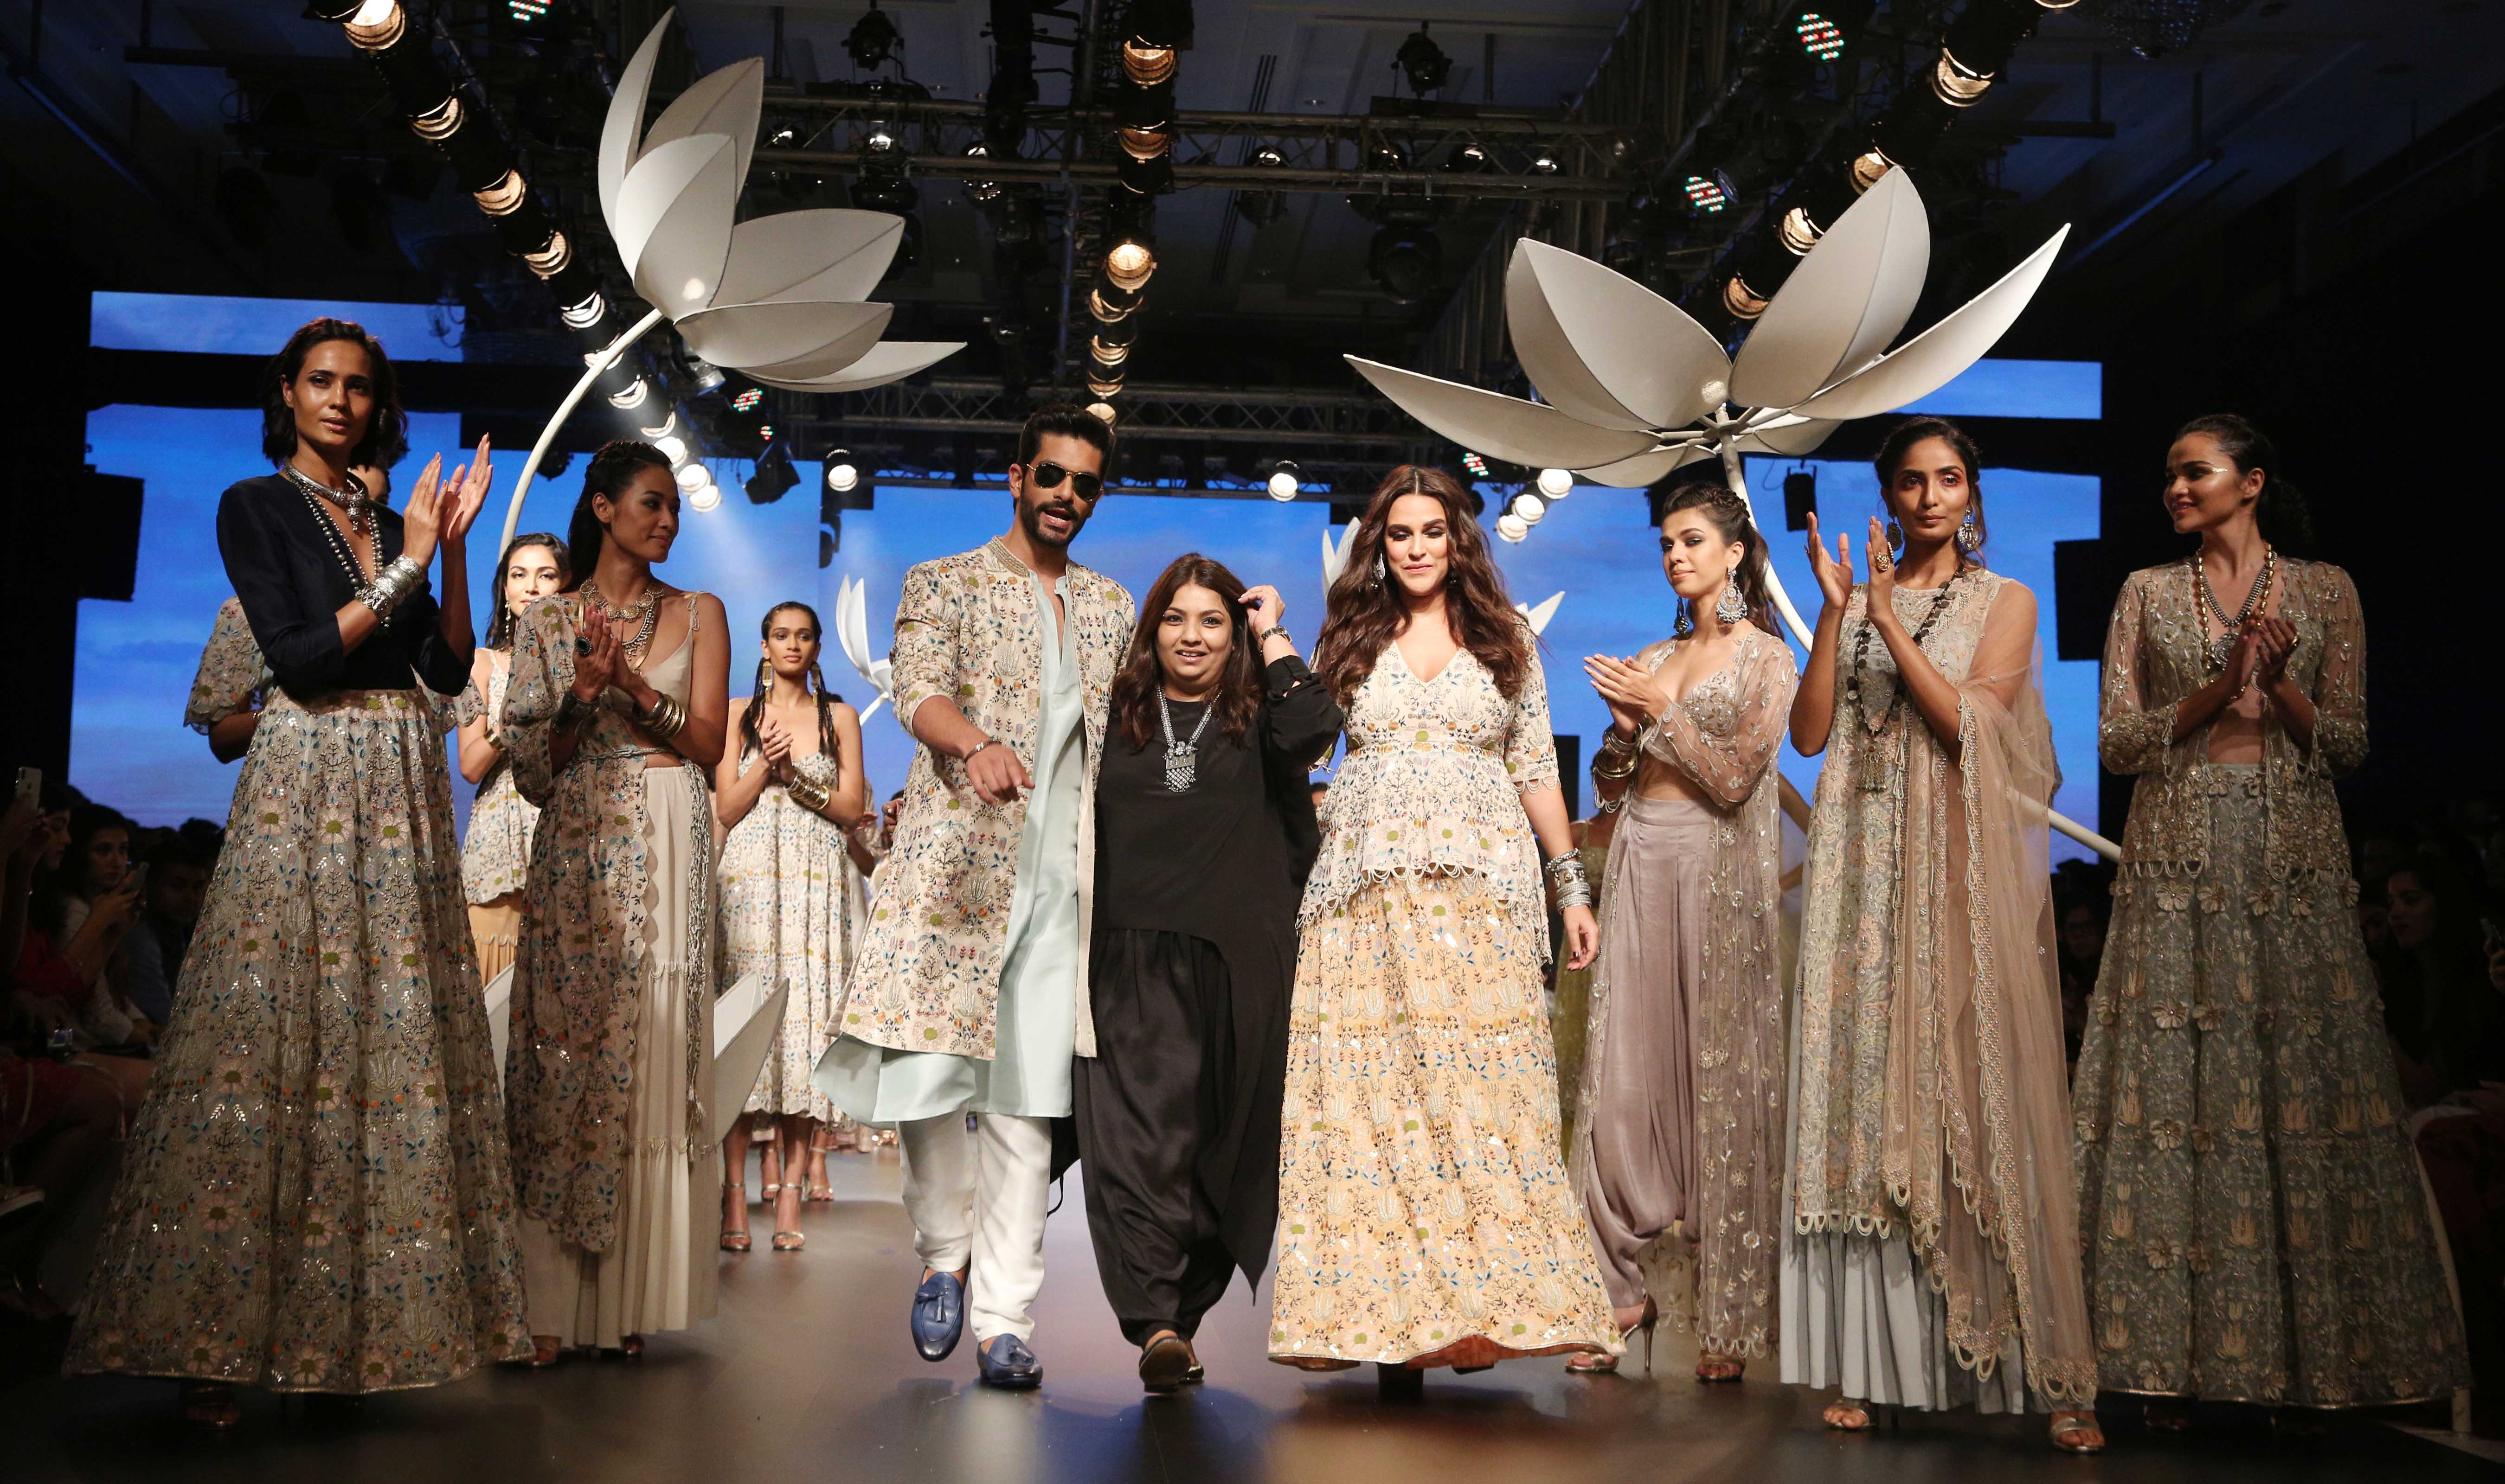 lfw 2018 DAY 4 SHOW 4 LAKME SALON AND PAYAL SINGHAL PRESENT THE SHOW STOPPING BRIDE (58)